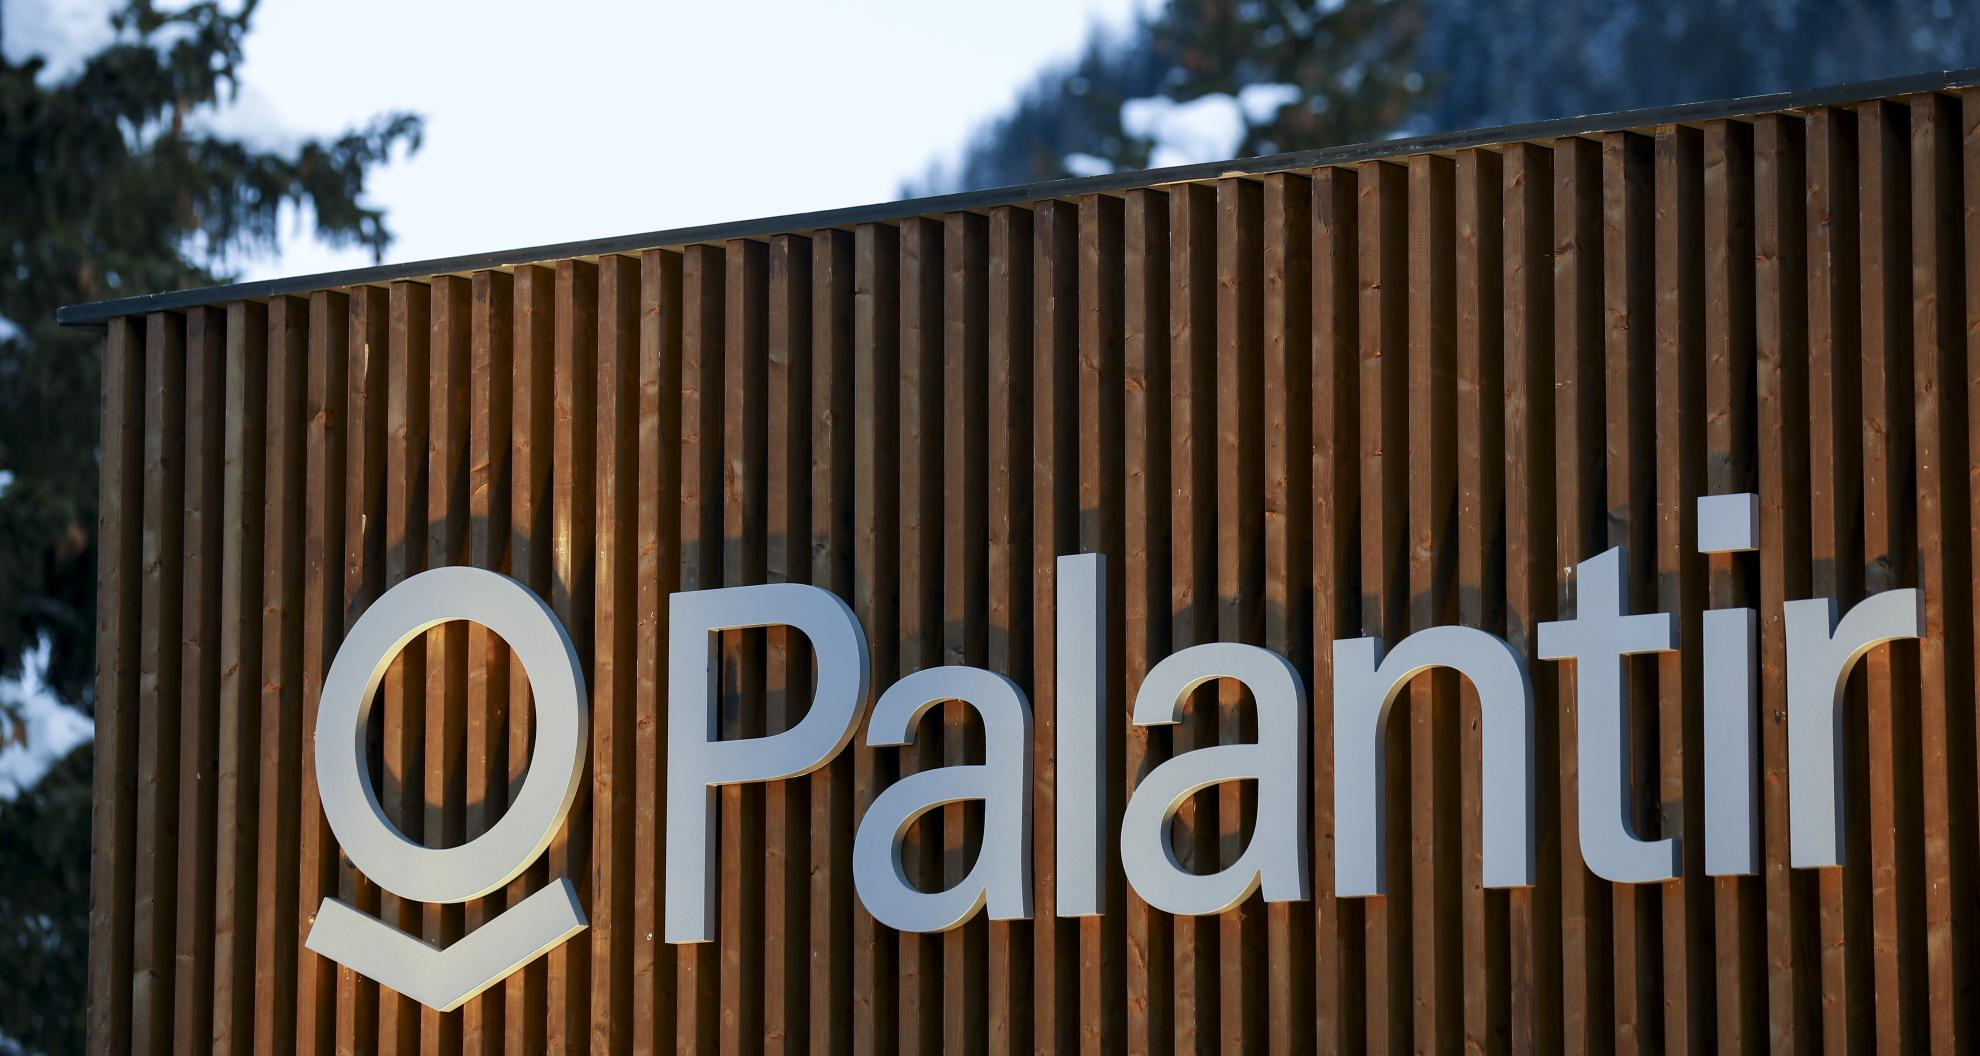 Data analytics firm Palantir confidentially files to go public